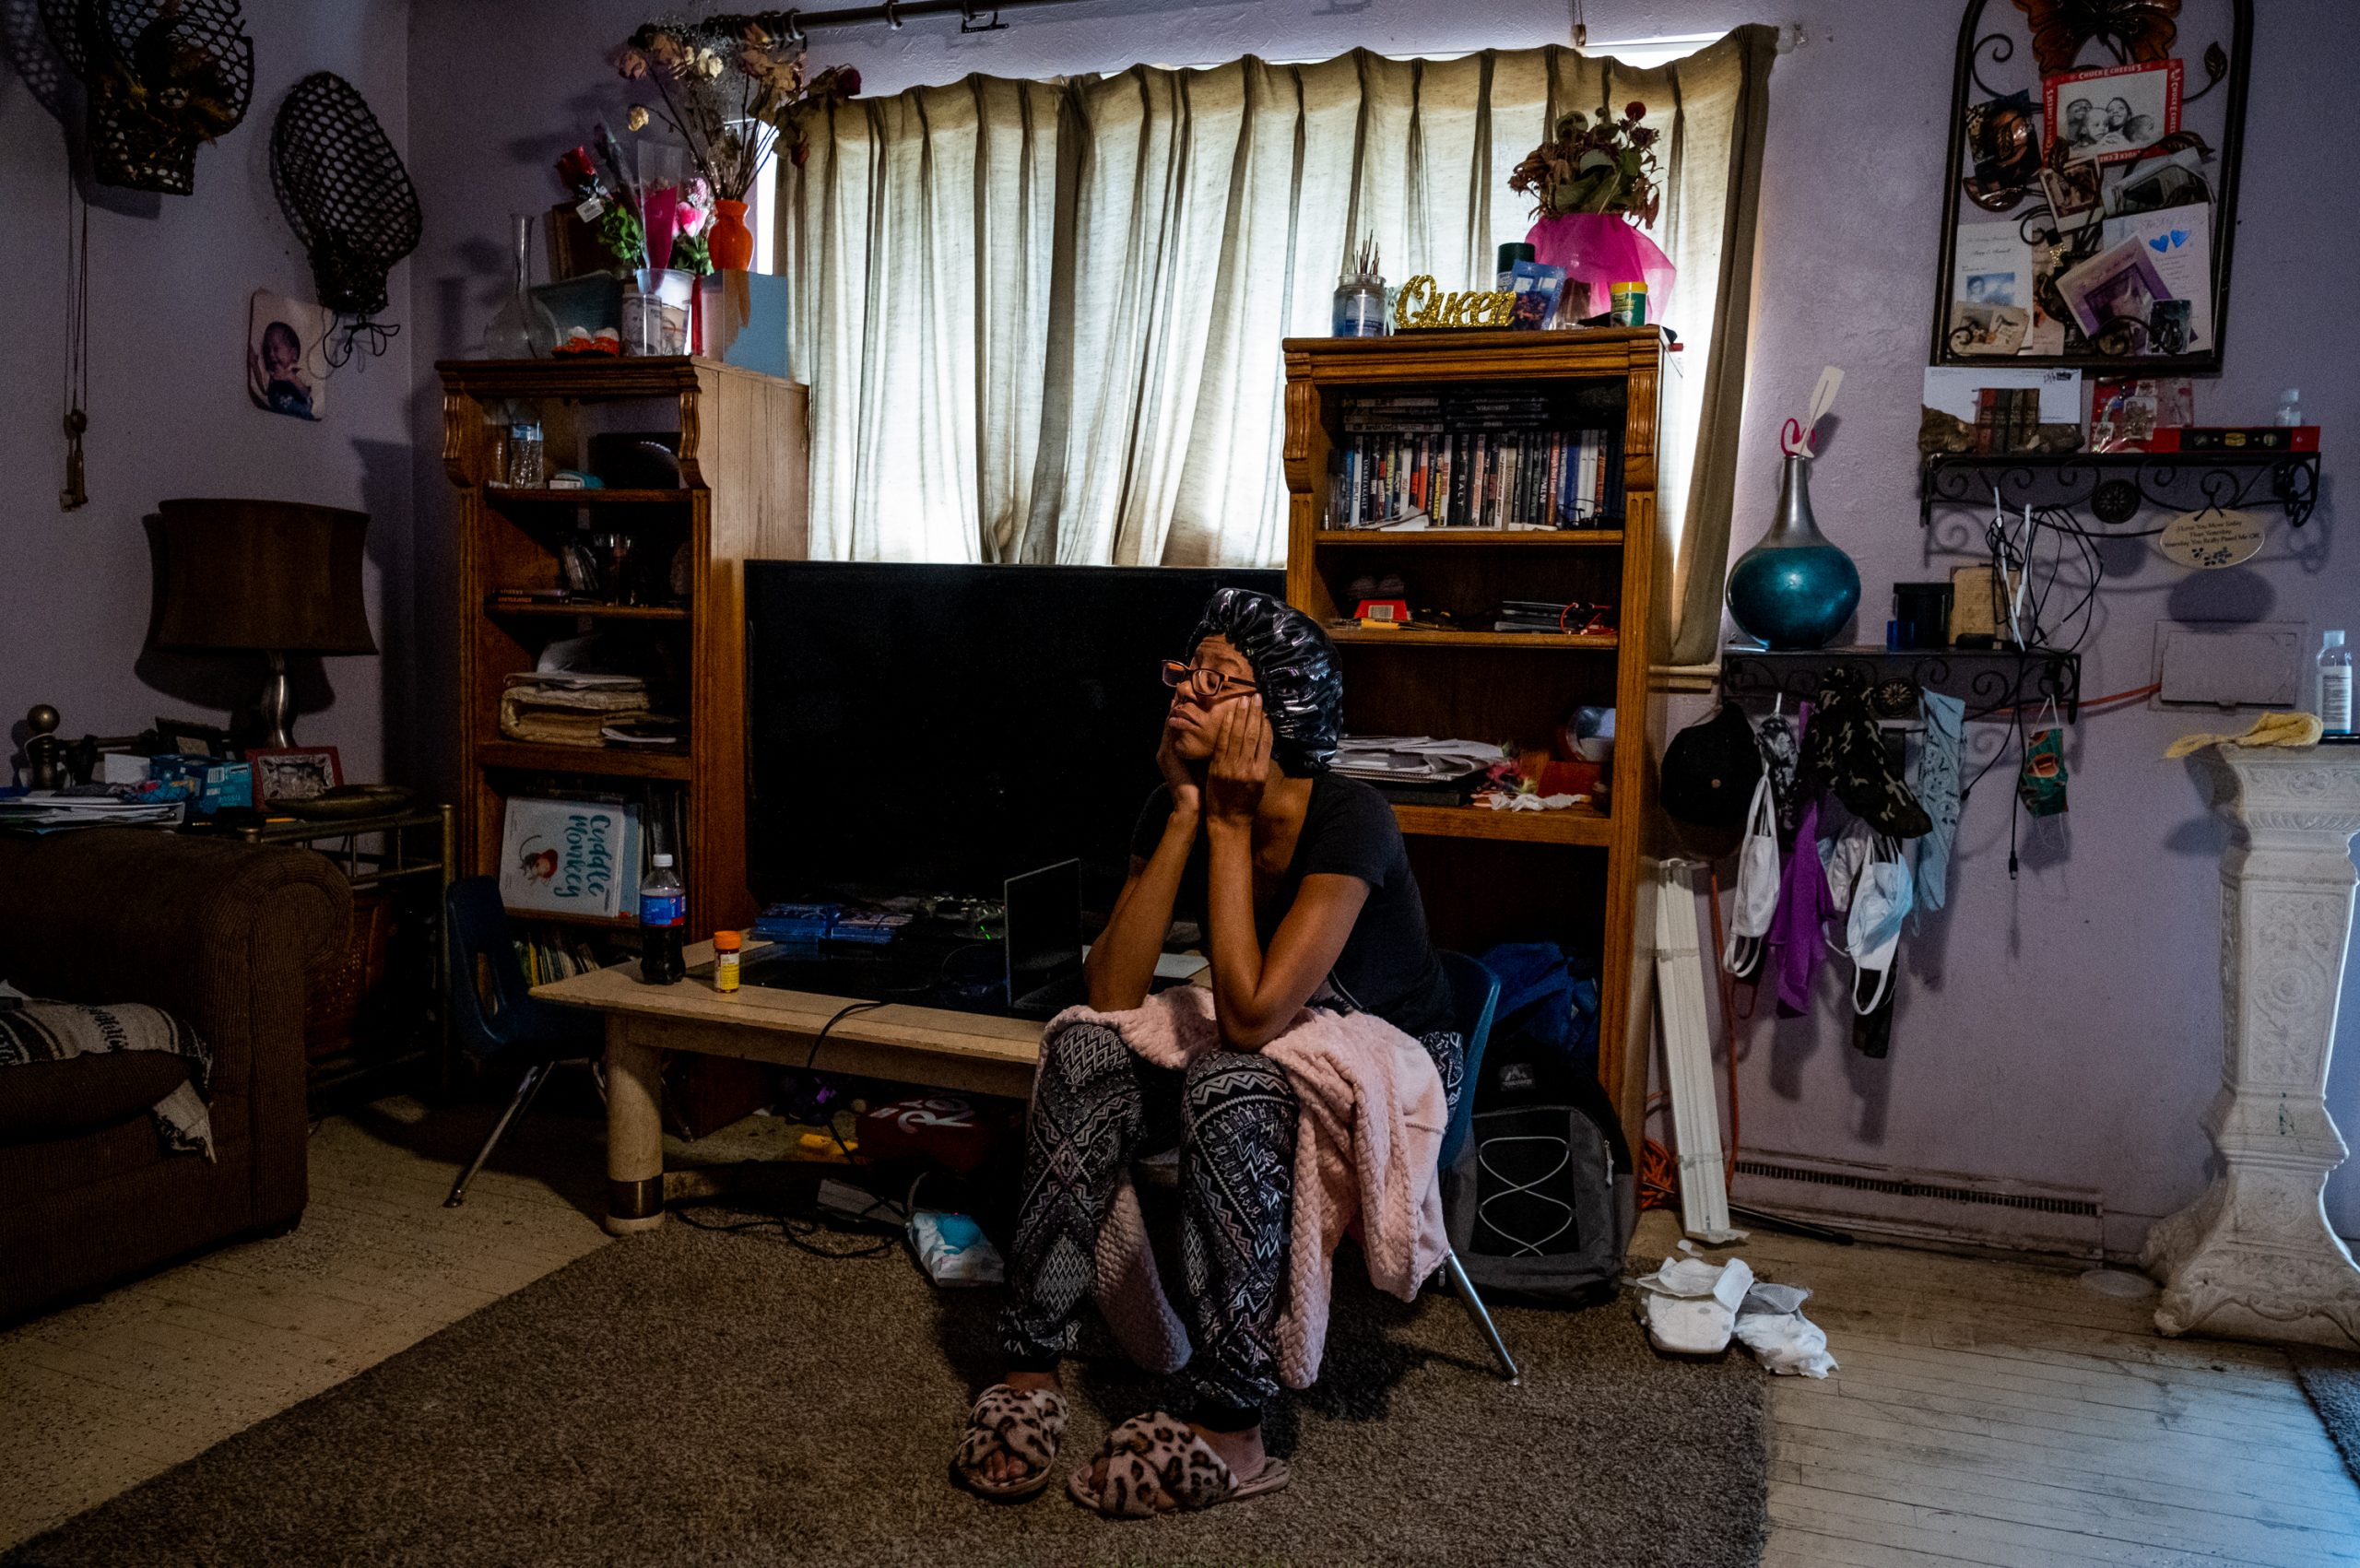 For an Aurora woman, a police settlement didn't make the pain go away